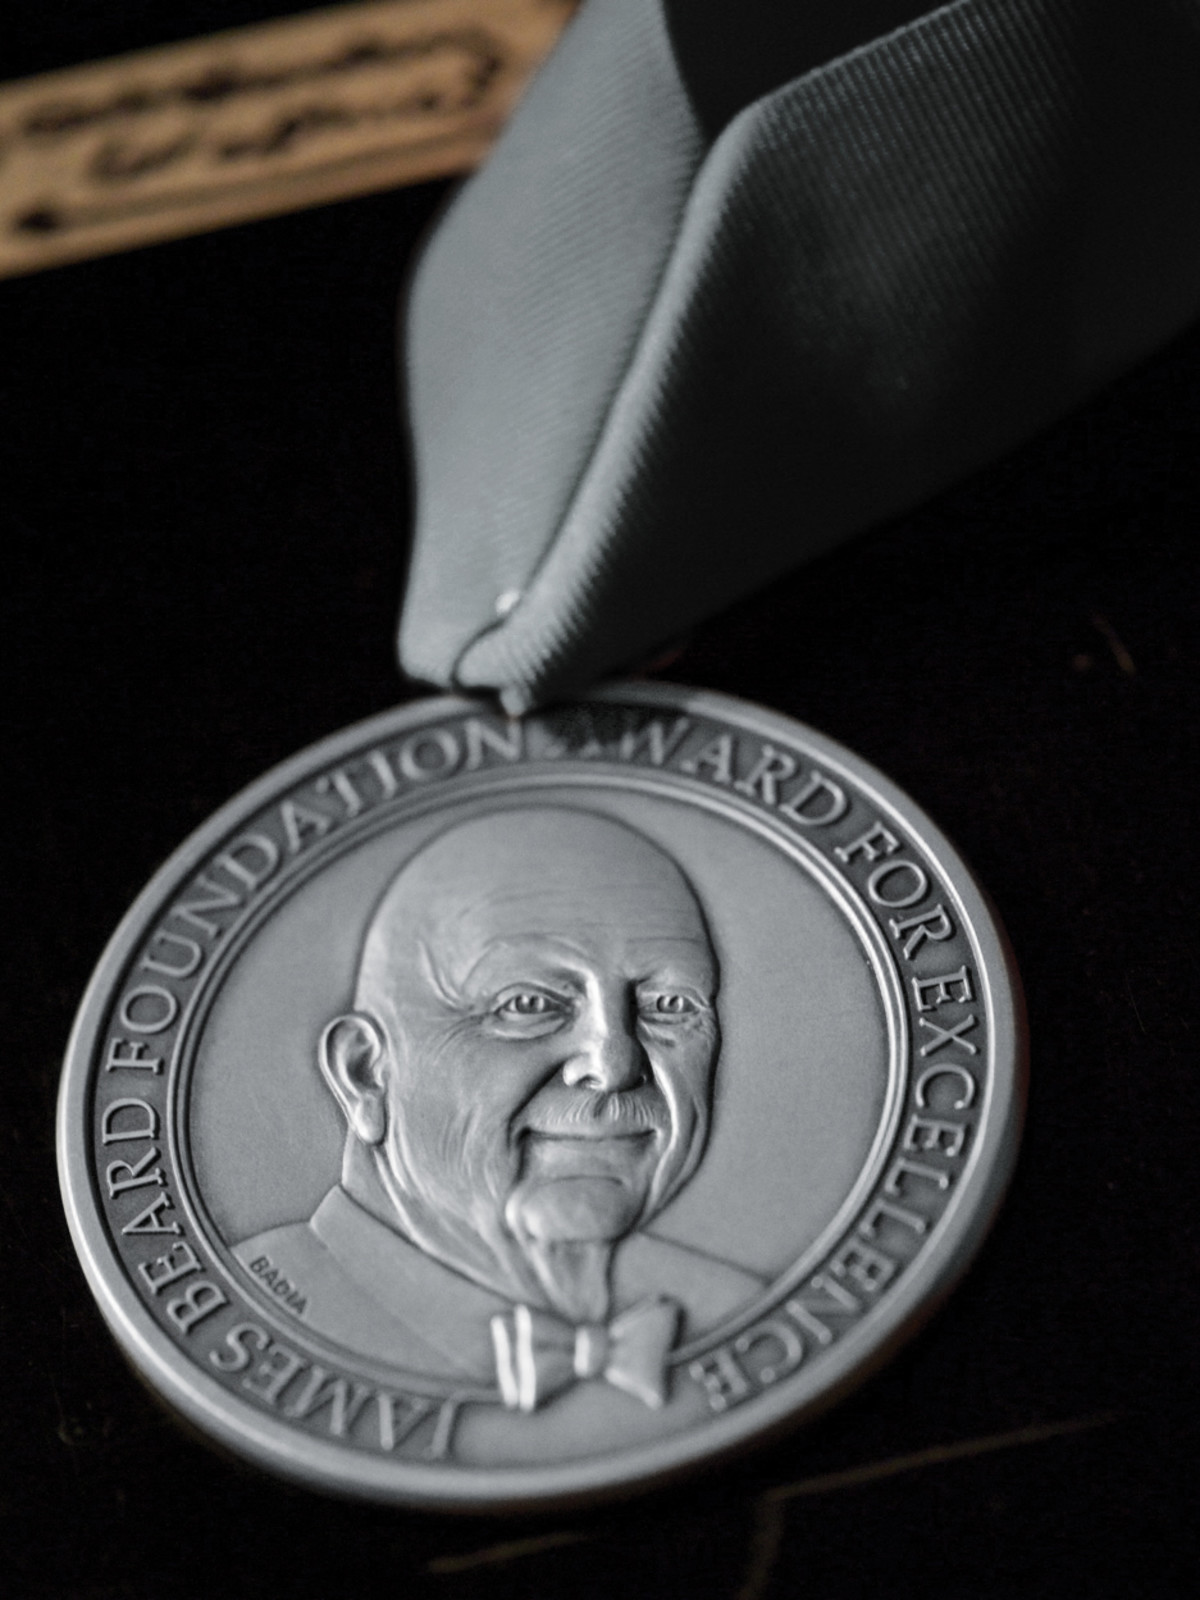 James Beard Foundation Award medal